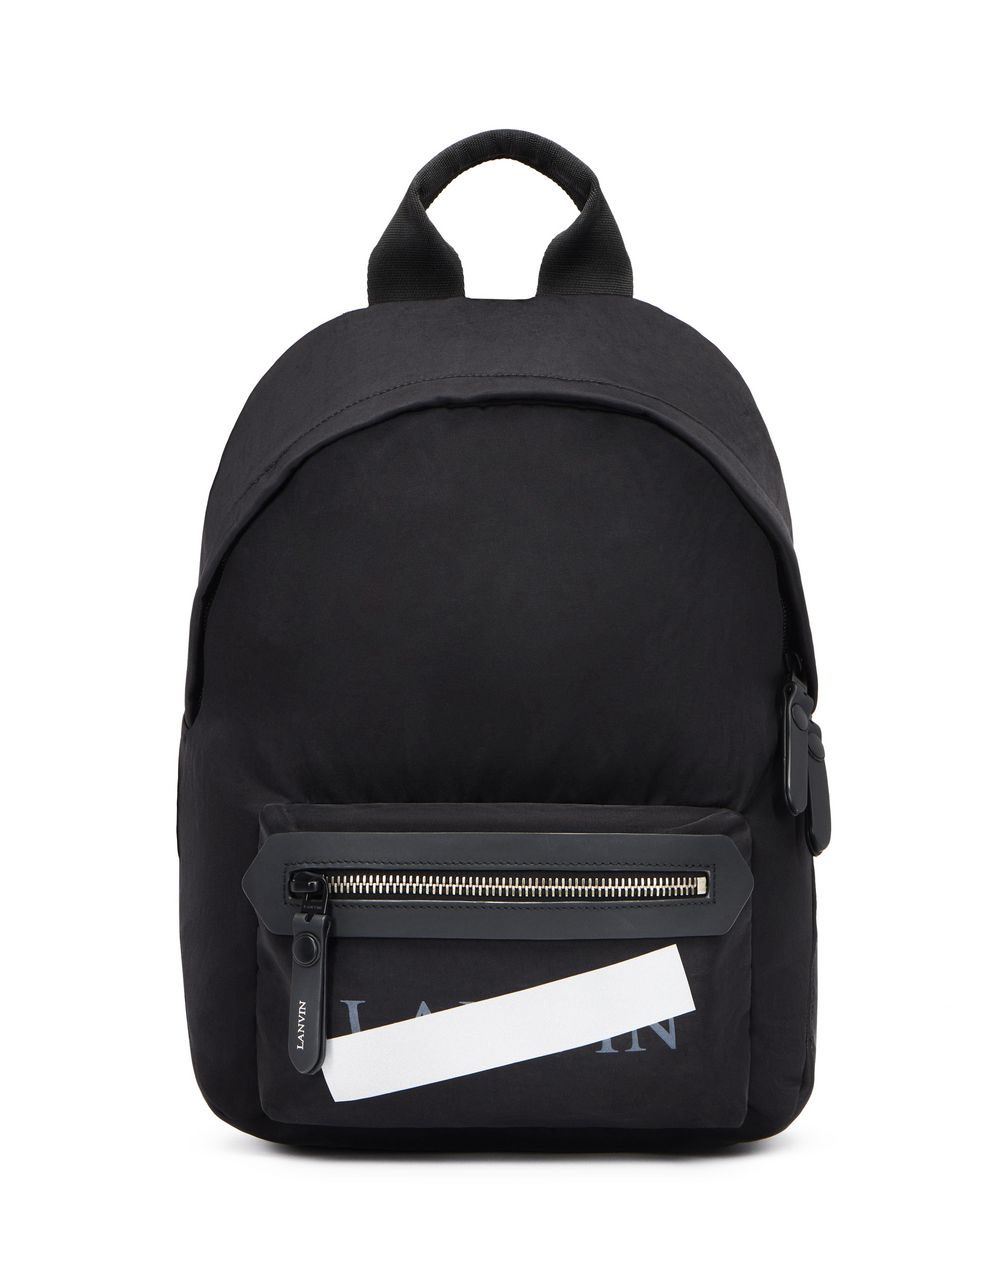 "BLACK ZIPPERED ""LANVIN"" BACKPACK - Lanvin"